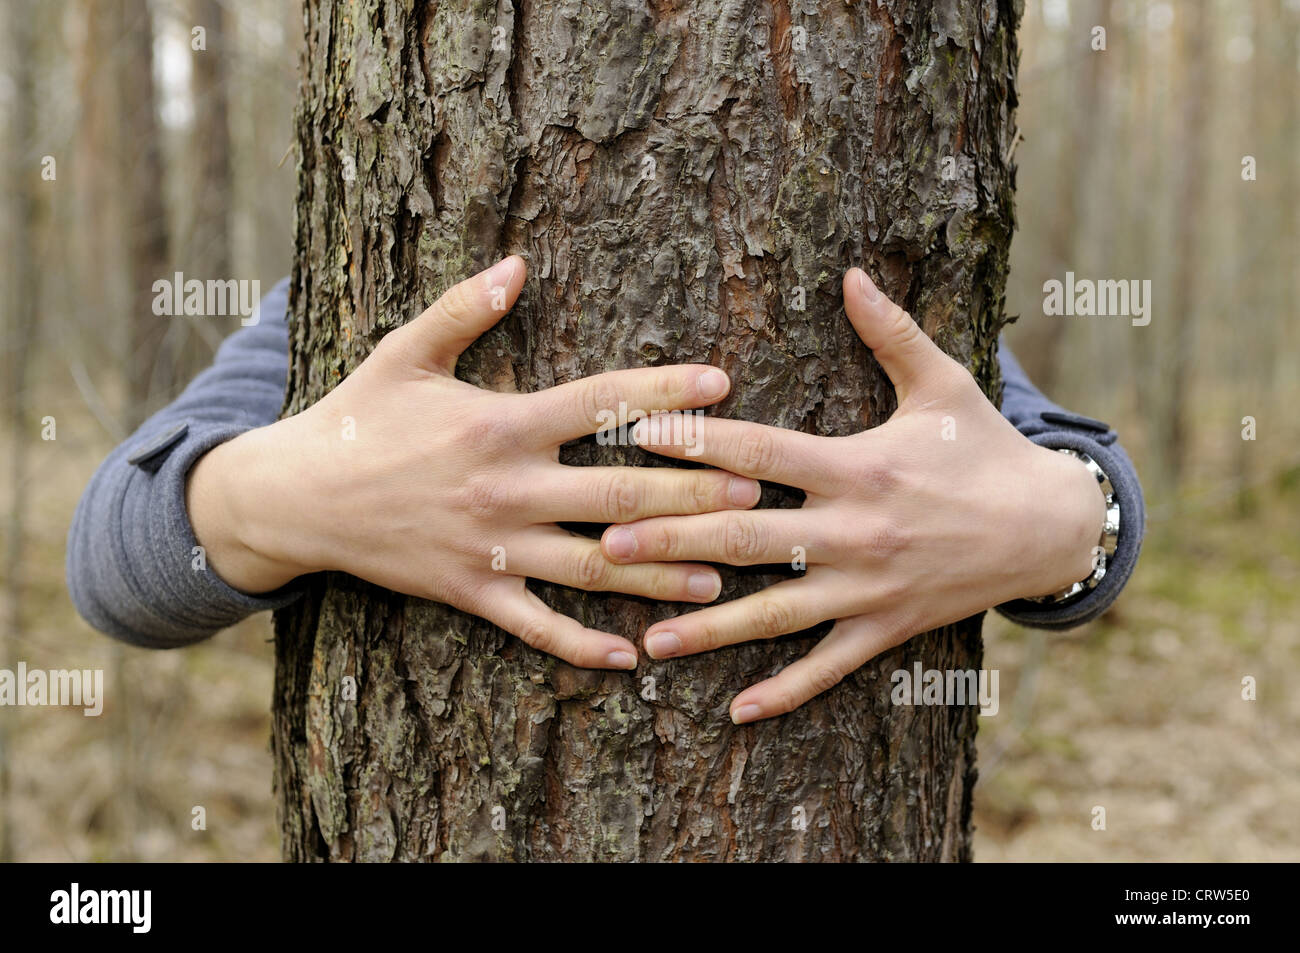 hands hug a tree Stock Photo